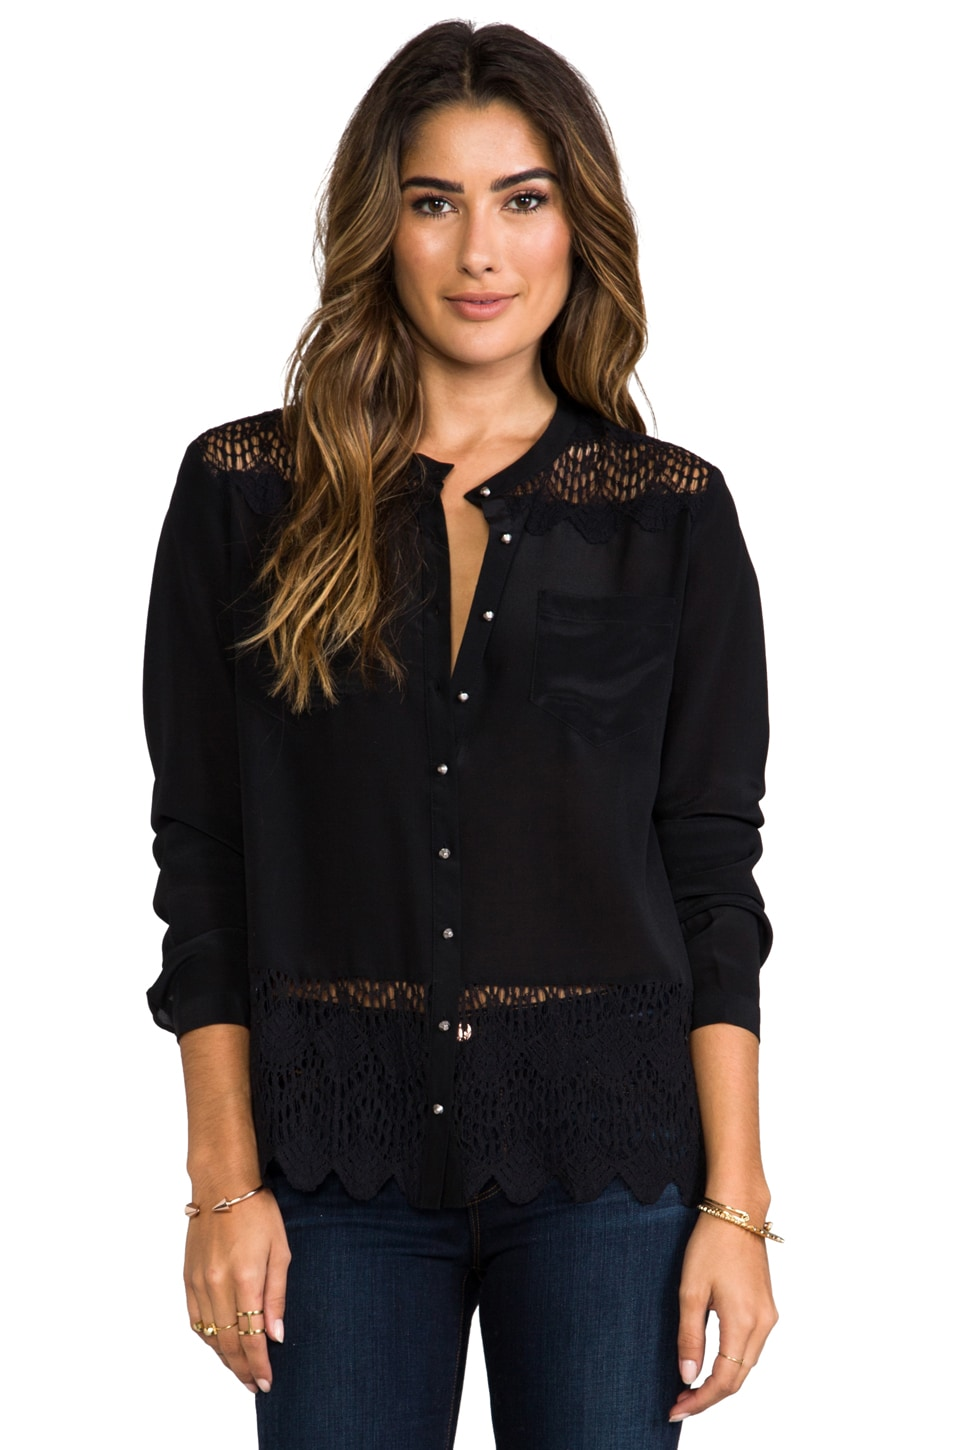 heartLoom Keaton Blouse in Black